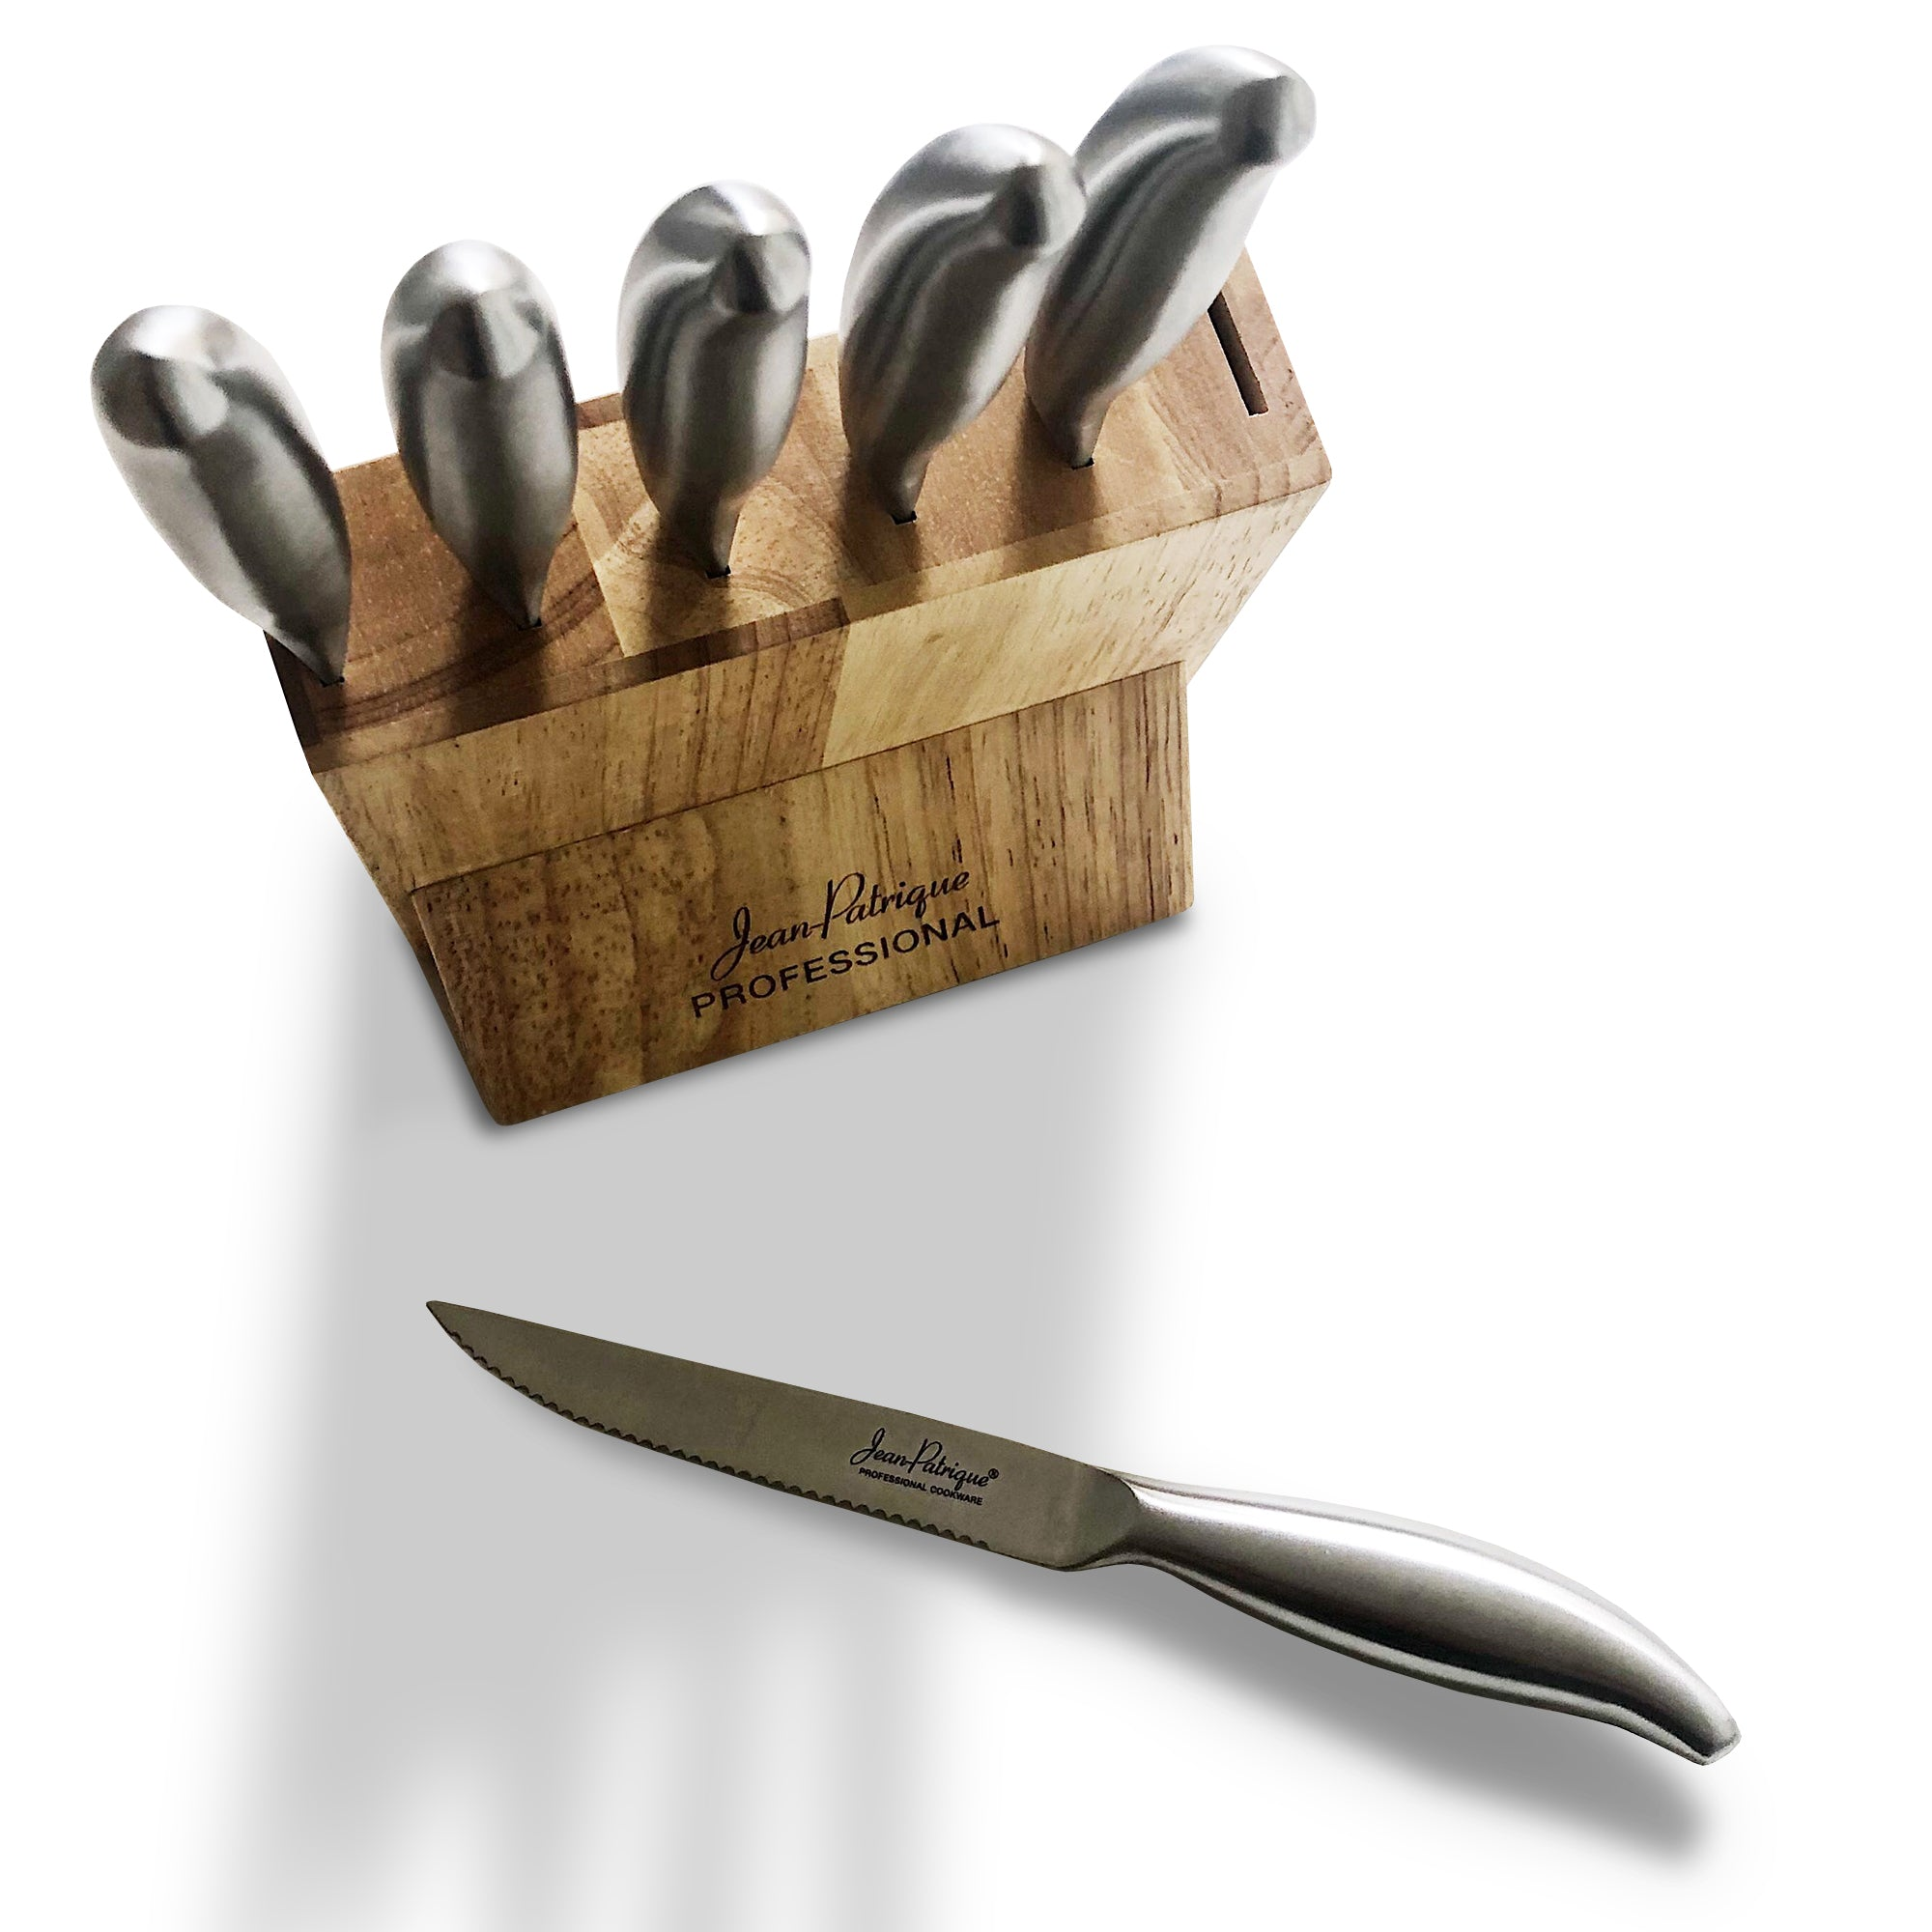 6-Piece Stainless Steel Steak Knife Set with Block